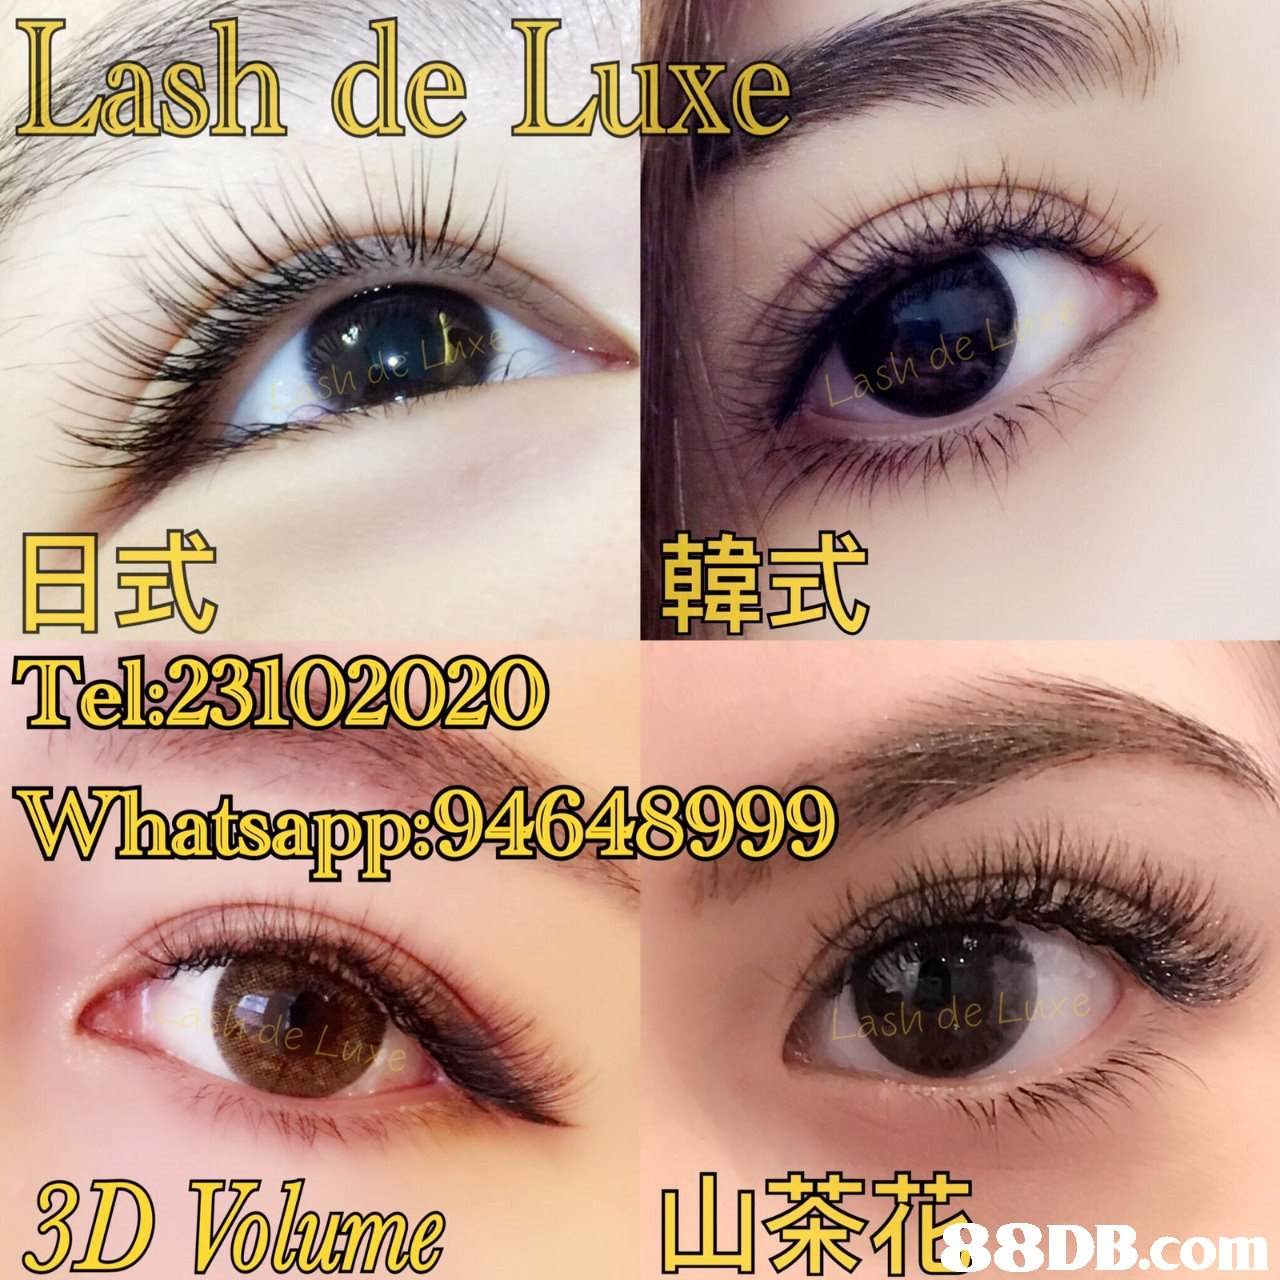 Lash de Luxe 日式 Tel:23102020 Whatsapp:94648999 韓式 sh de DVome1tB8DB.com  eyebrow,eyelash,eye,cosmetics,eyelash extensions